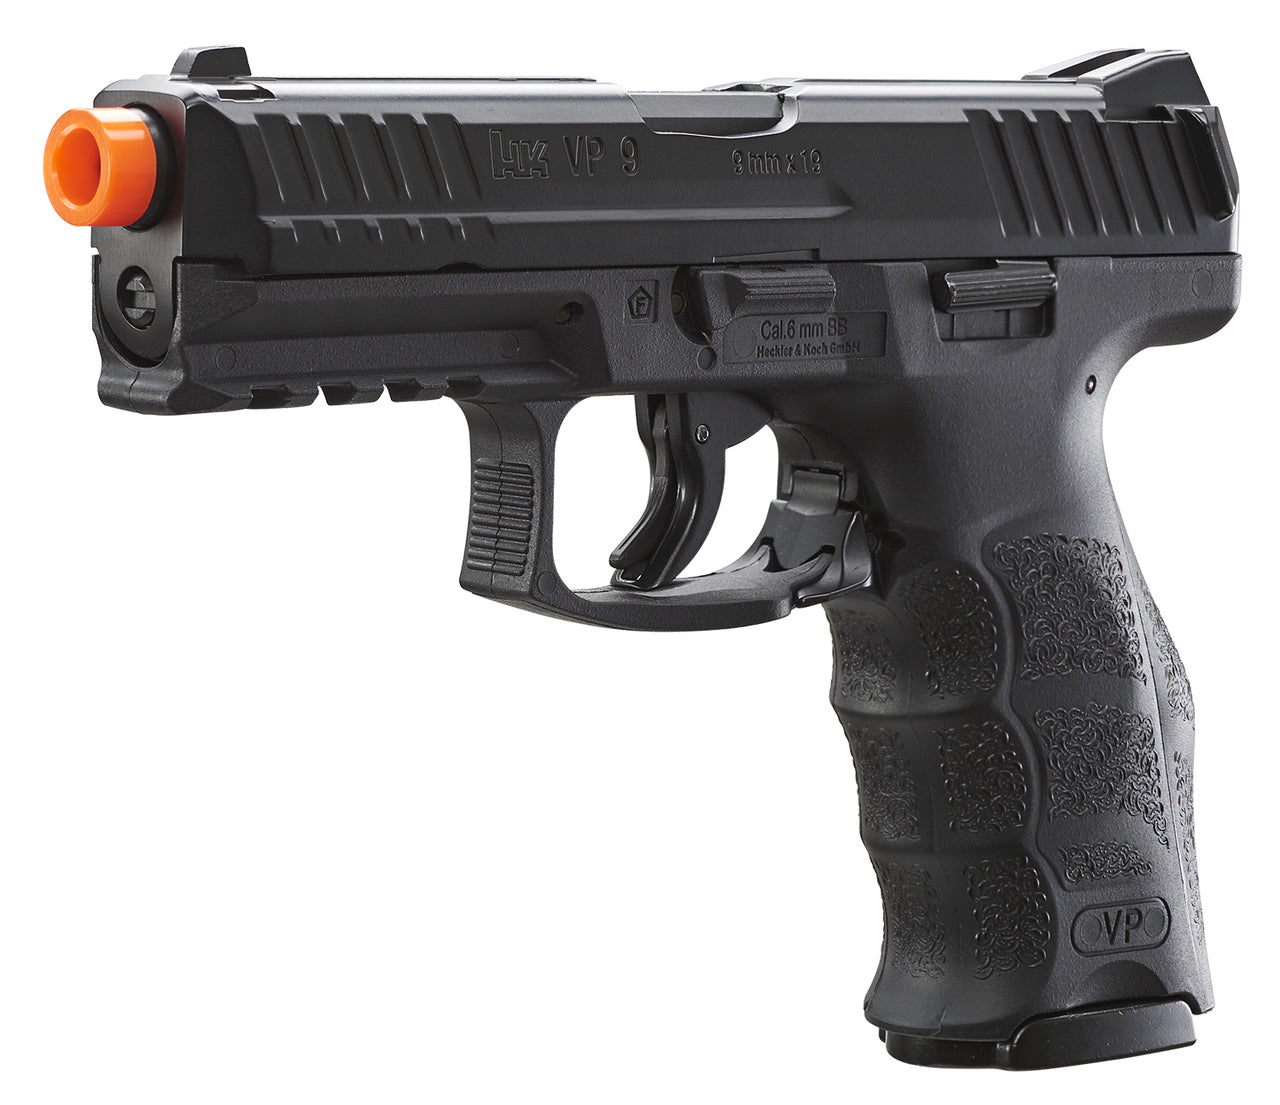 HK VP9 C02 Blow Back Pistol